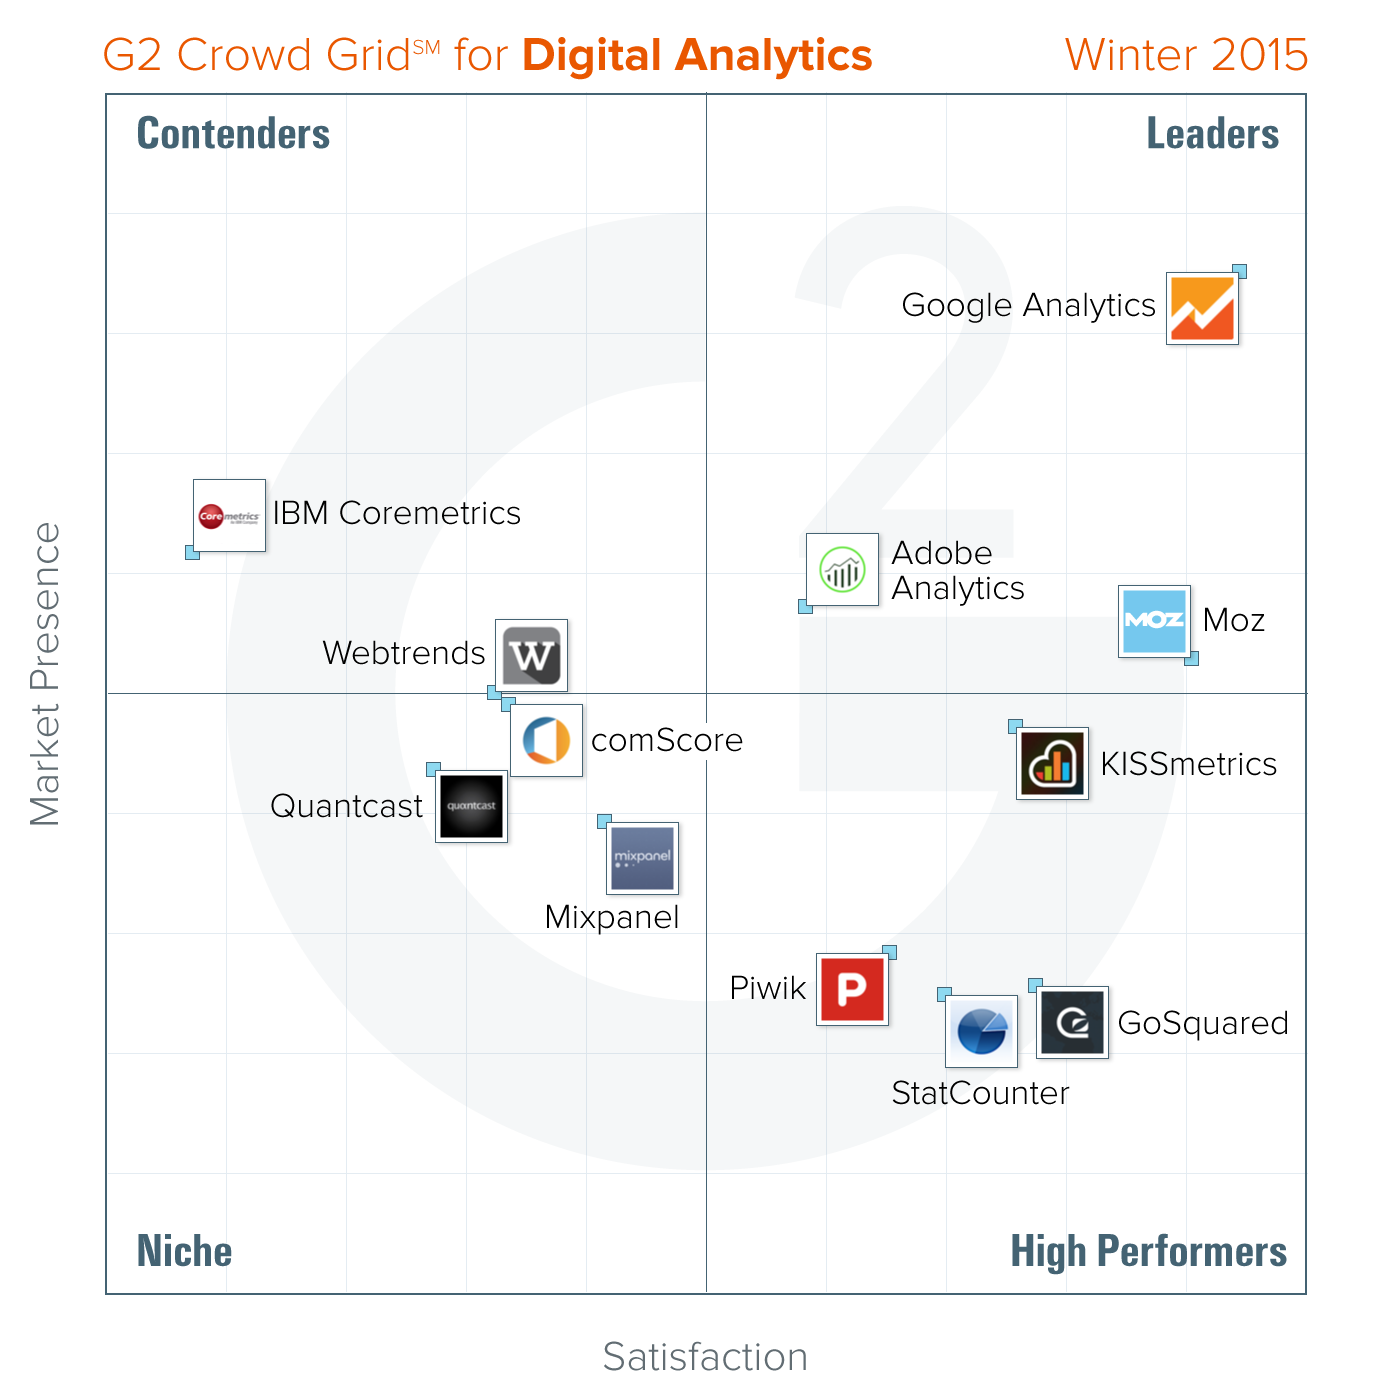 G2 Crowd Publishes Winter 2015 Rankings of the Best Digital Analytics ...: https://www.g2crowd.com/press-release/best-digital-analytics...